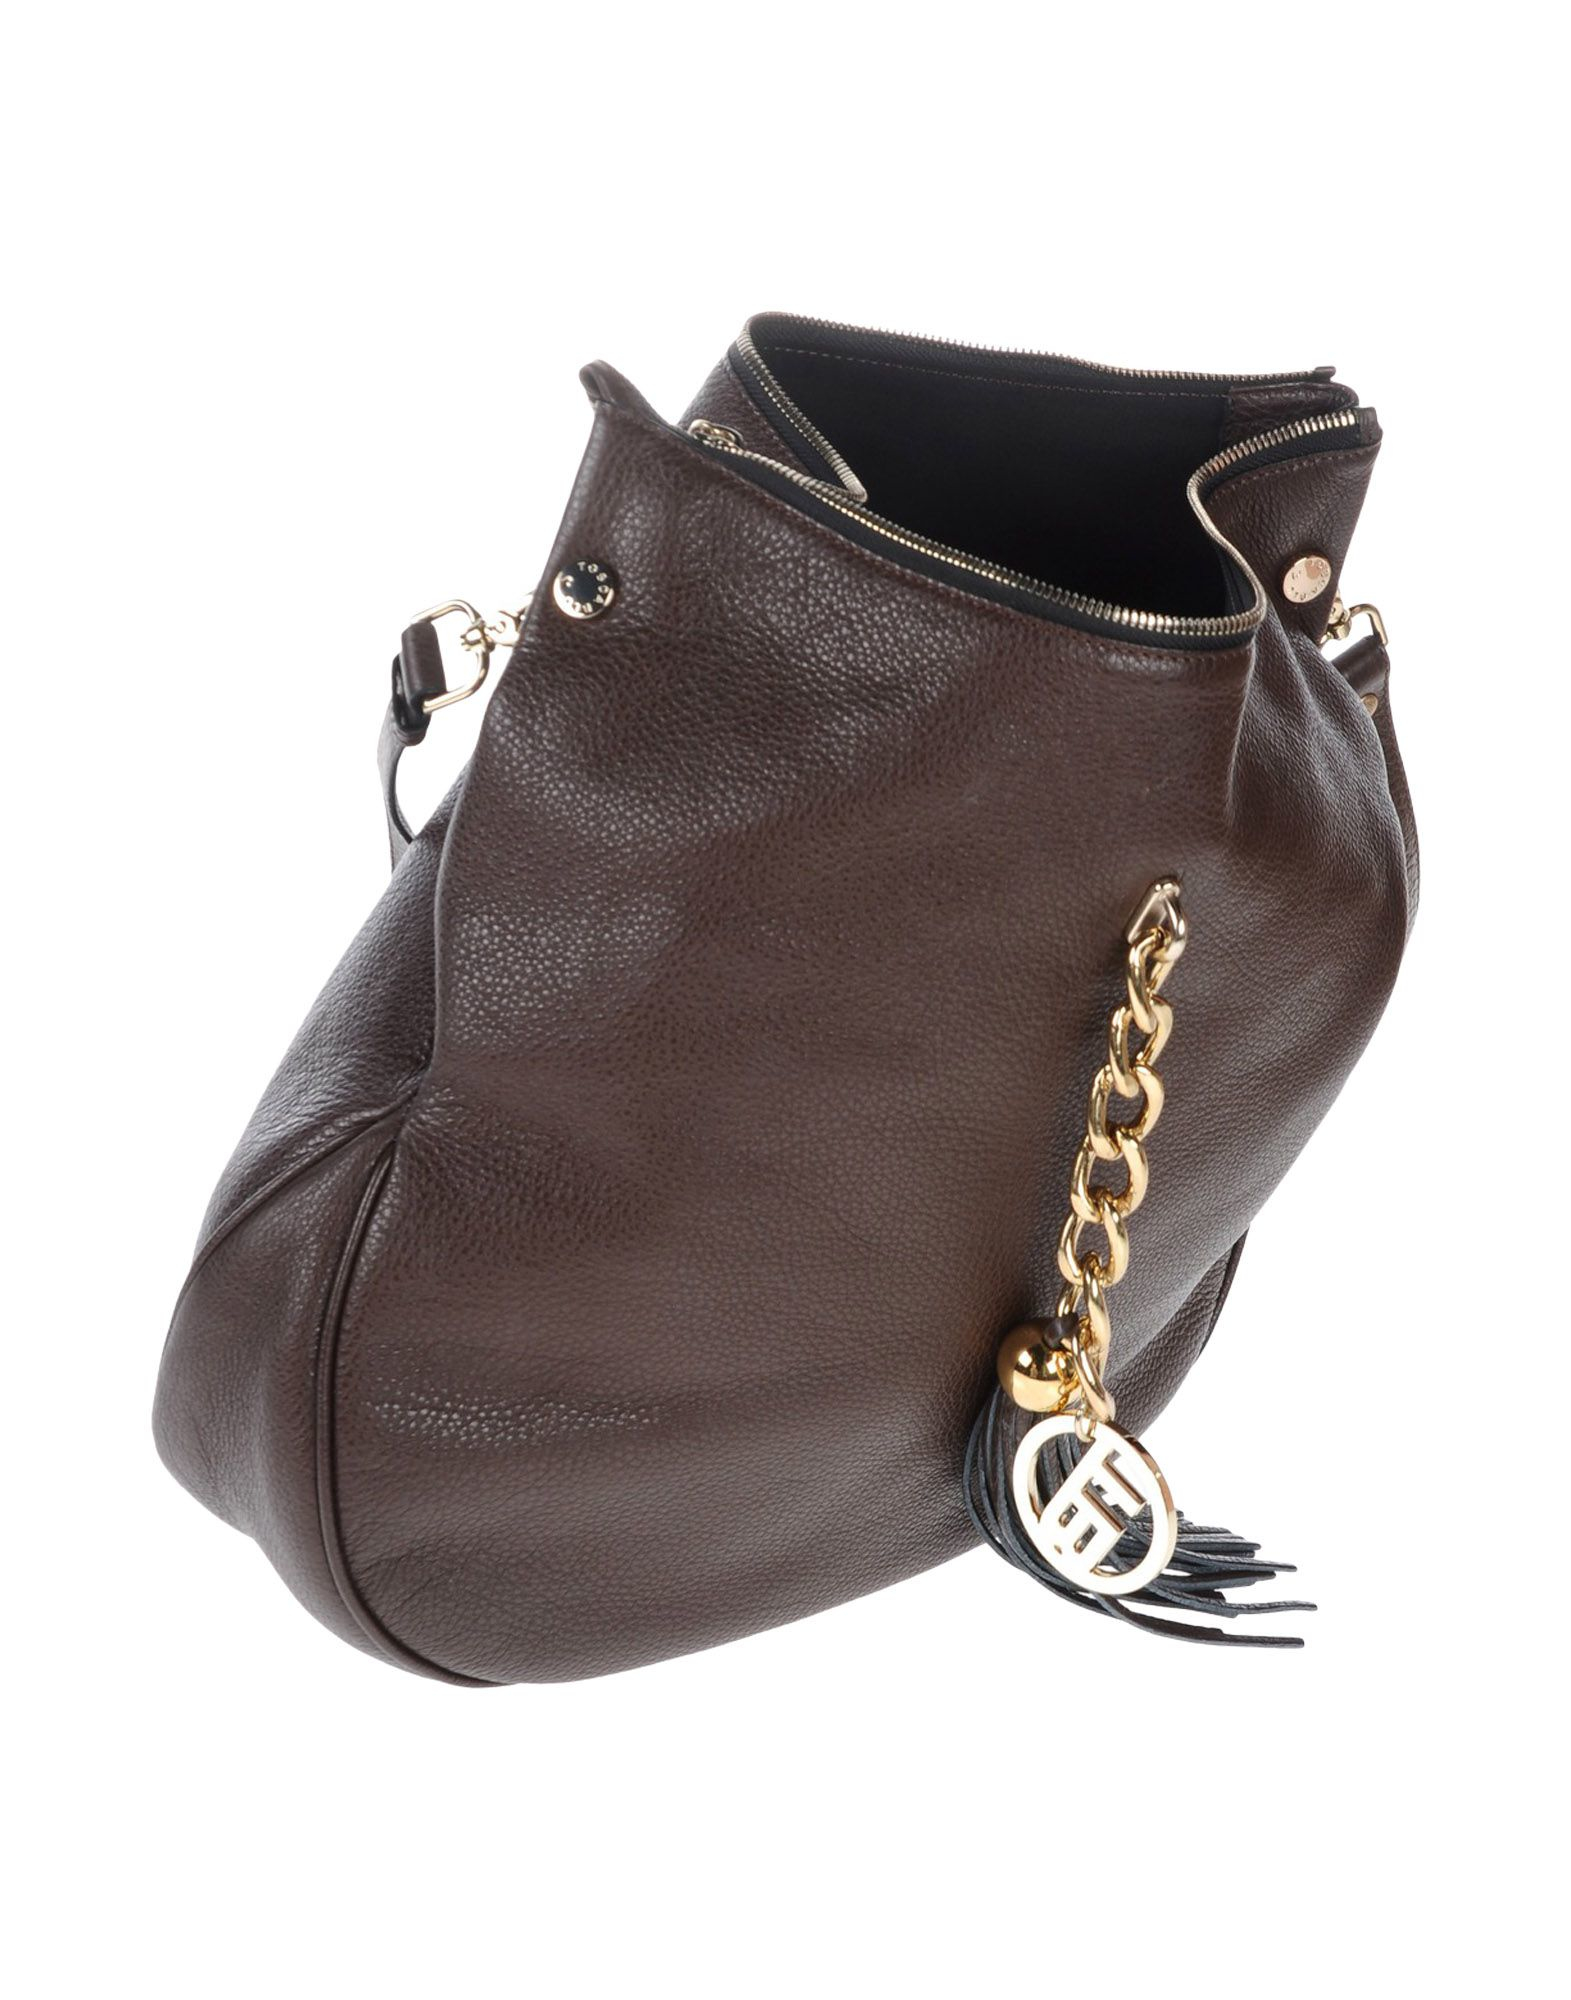 Tosca Blu Leather Cross-body Bag in Brown